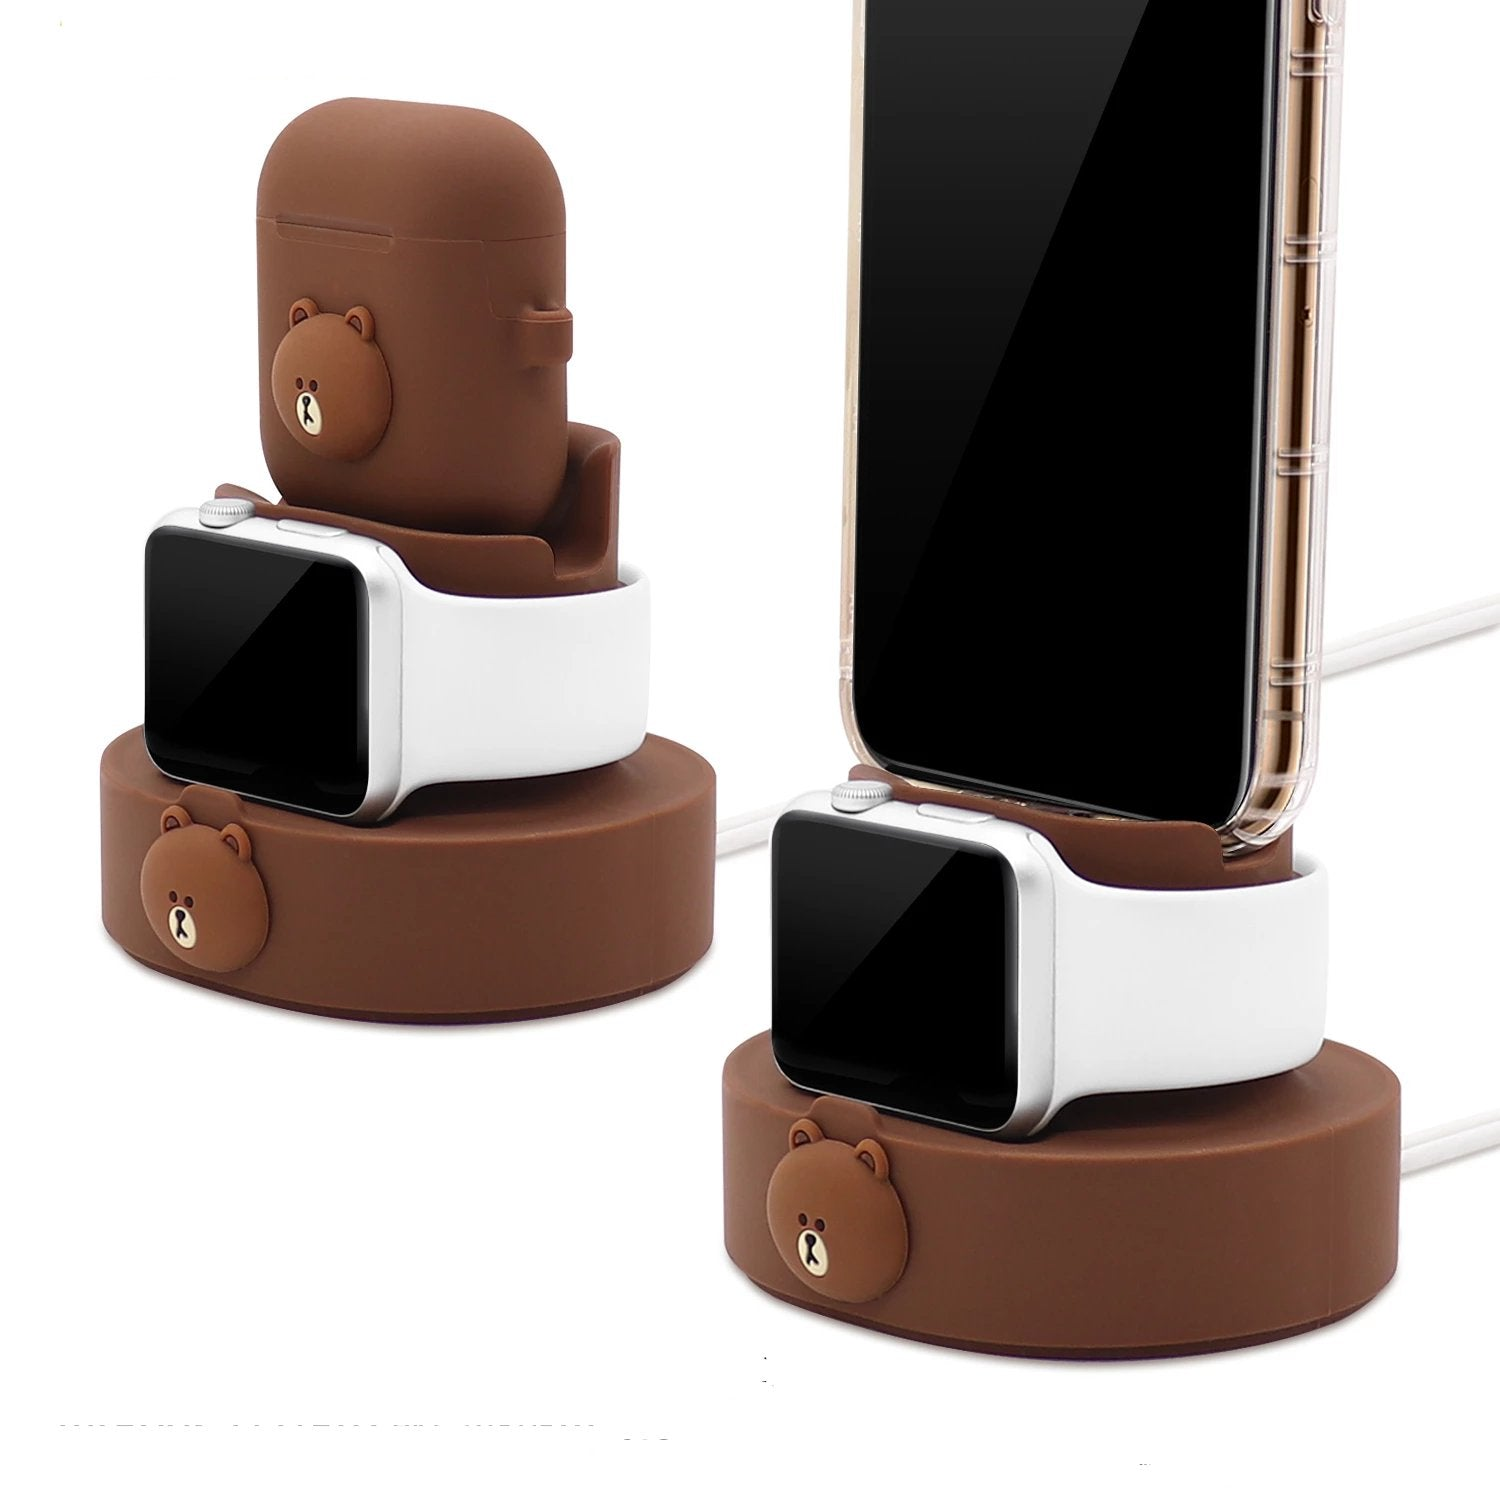 GARMMA Line Friends Apple Watch Charger Dock AirPods Charging Stand iPhone Holder